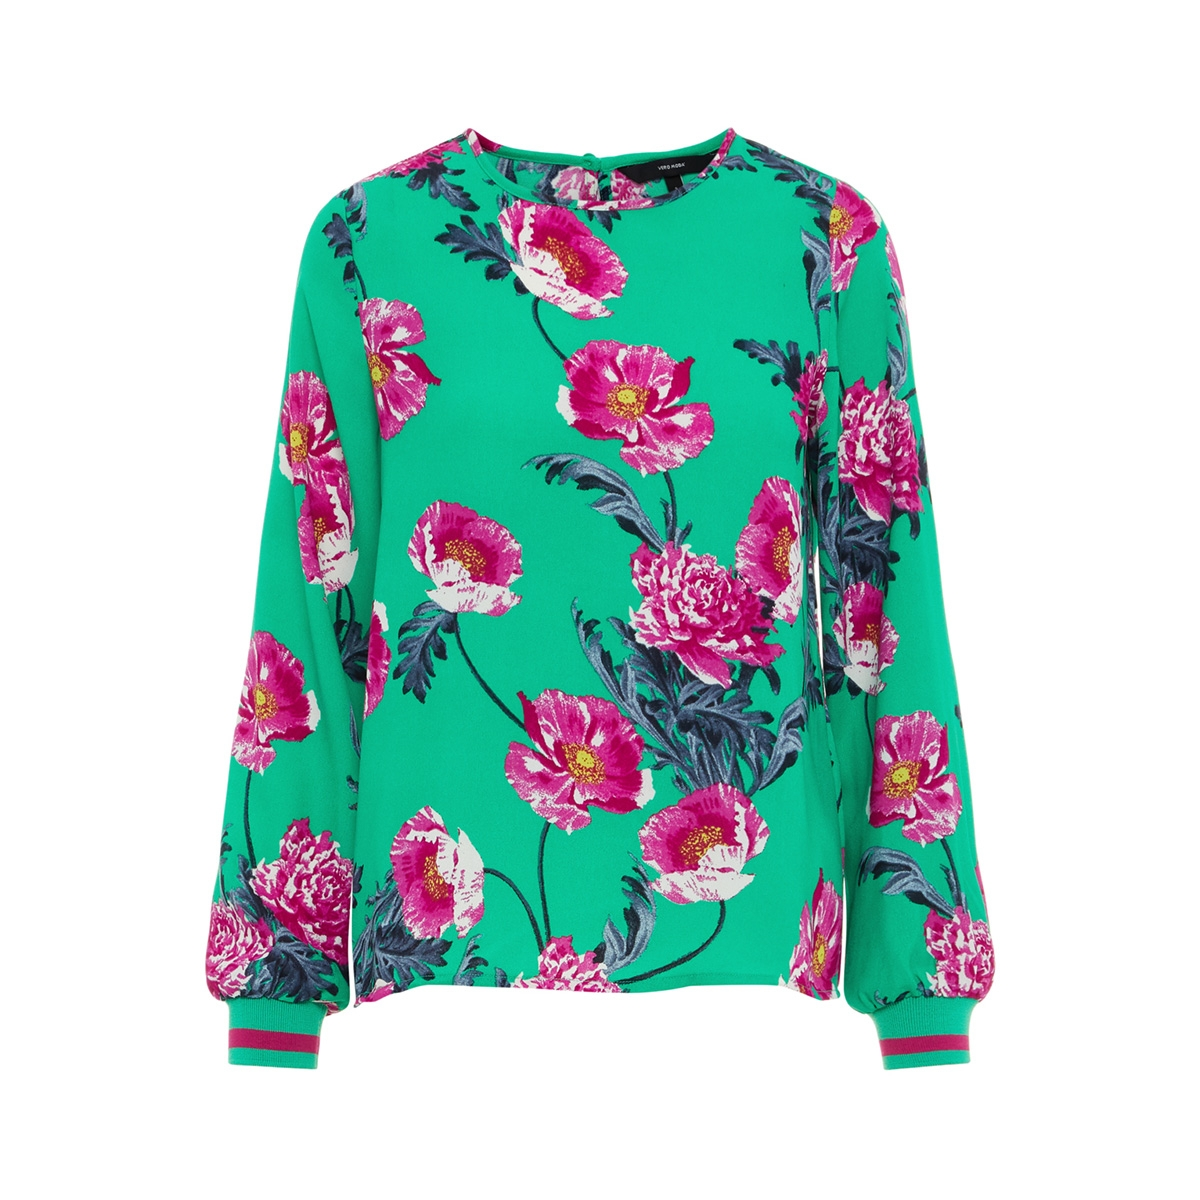 vmholly l/s midi top d2-1 wvn 10210142 vero moda t-shirt holly green